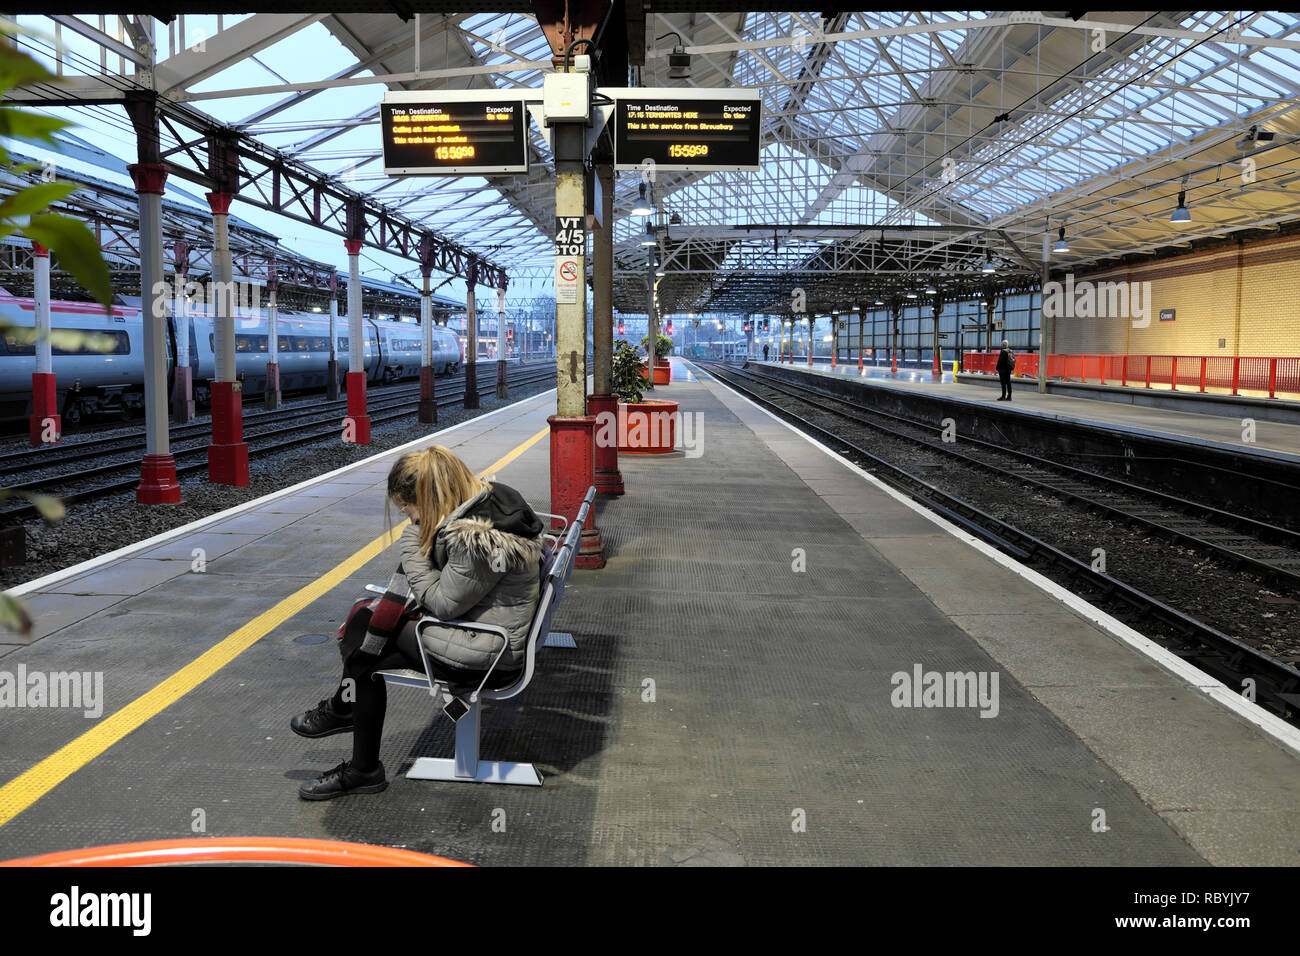 A young woman sitting on a bench waiting for a train on the platform at Crewe railway station in England UK   KATHY DEWITT - Stock Image